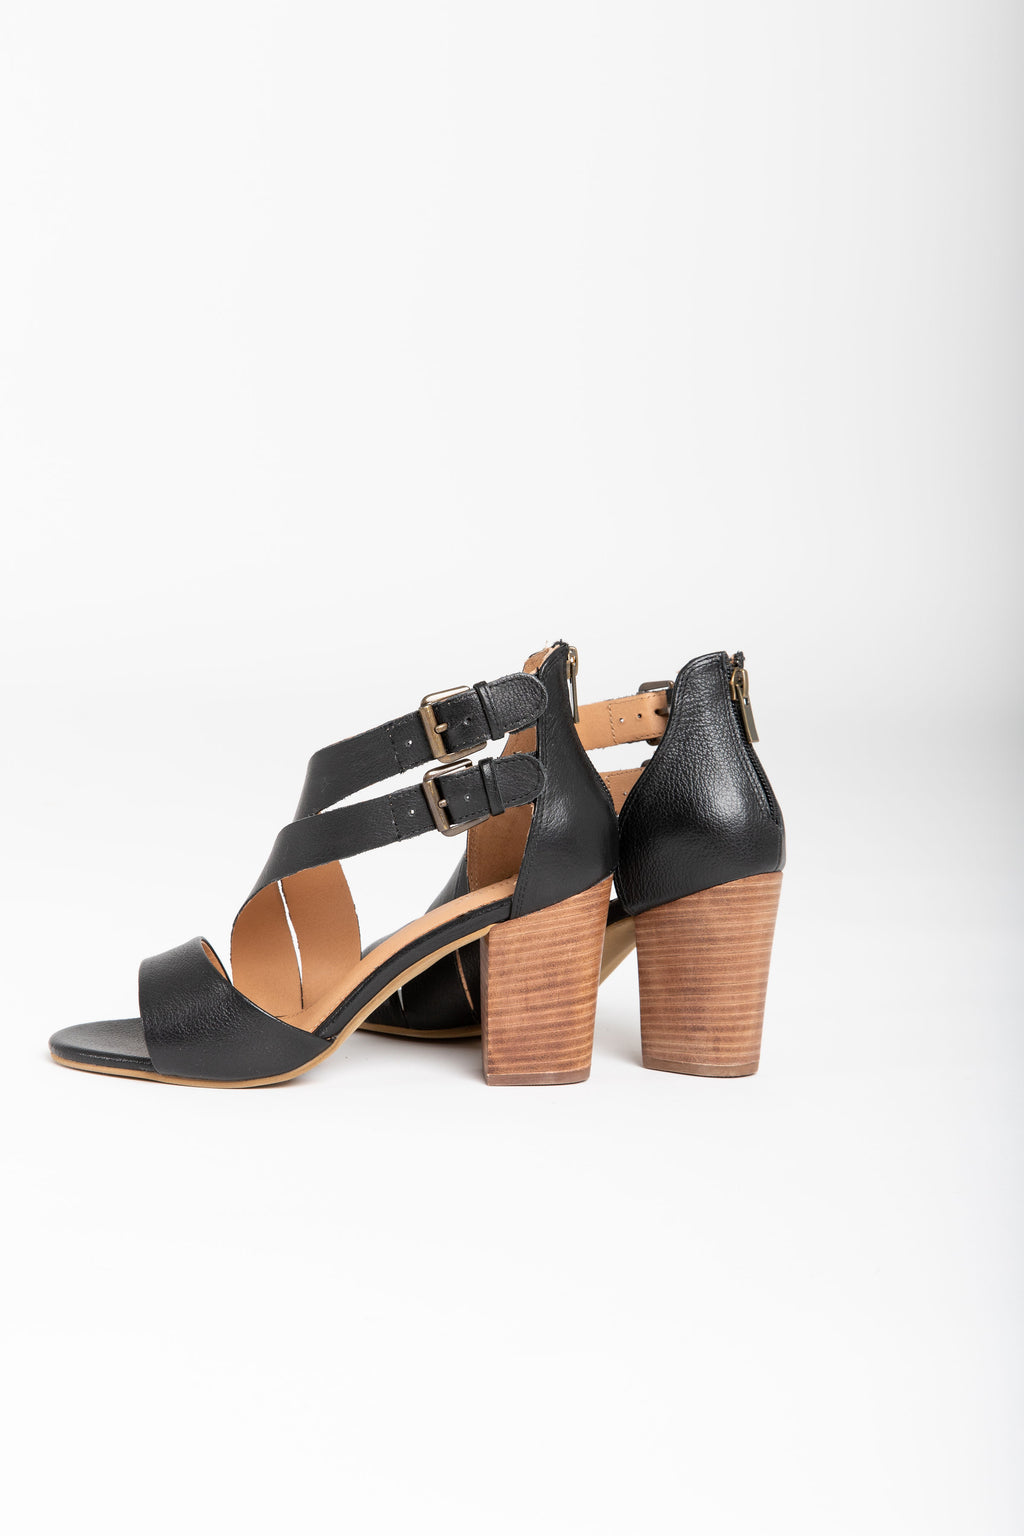 Crevo Footwear: Tallulah Heel Sandal in Black Leather